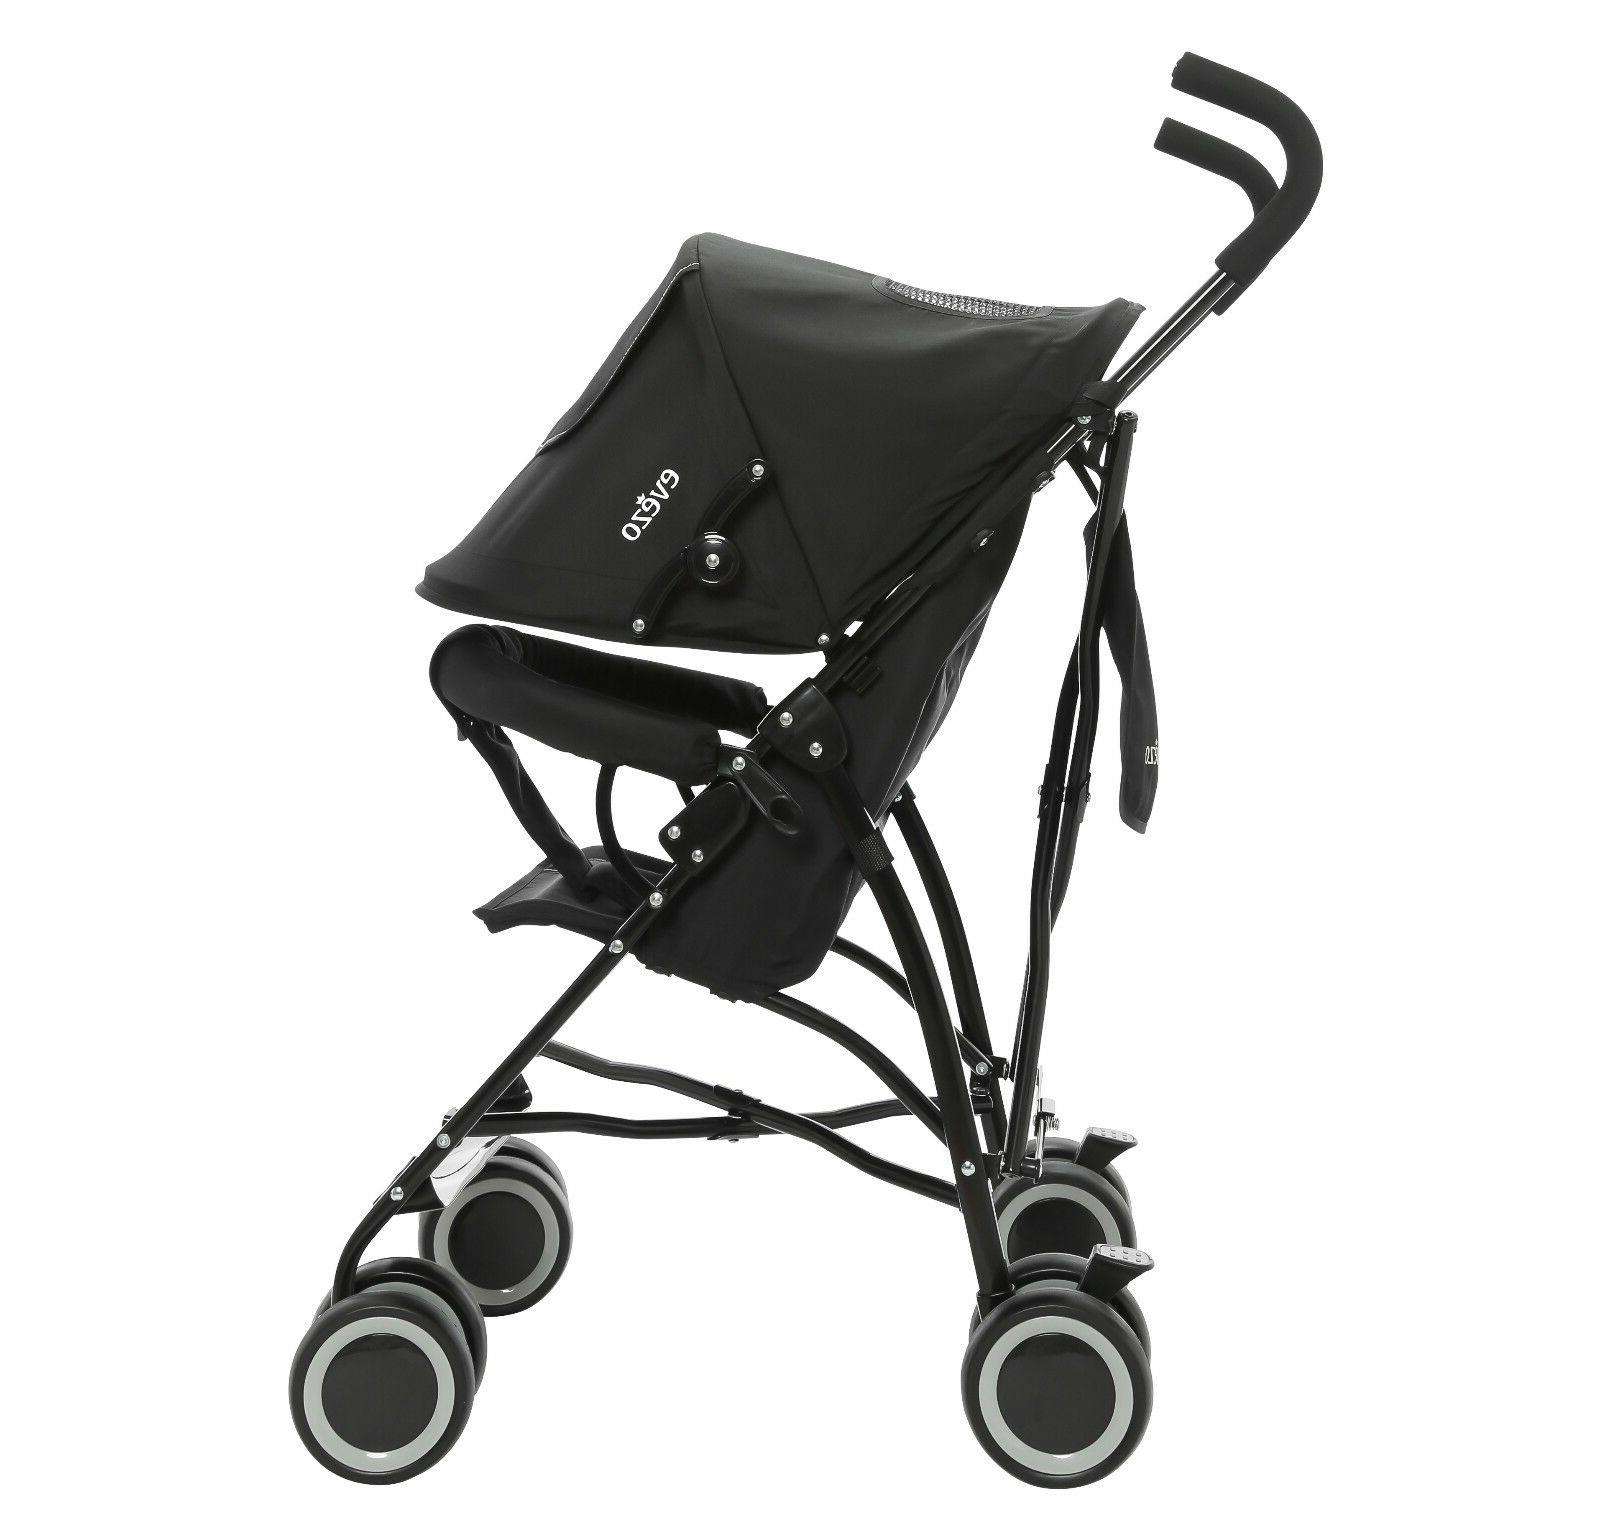 evezo compact lightweight baby stroller with 5